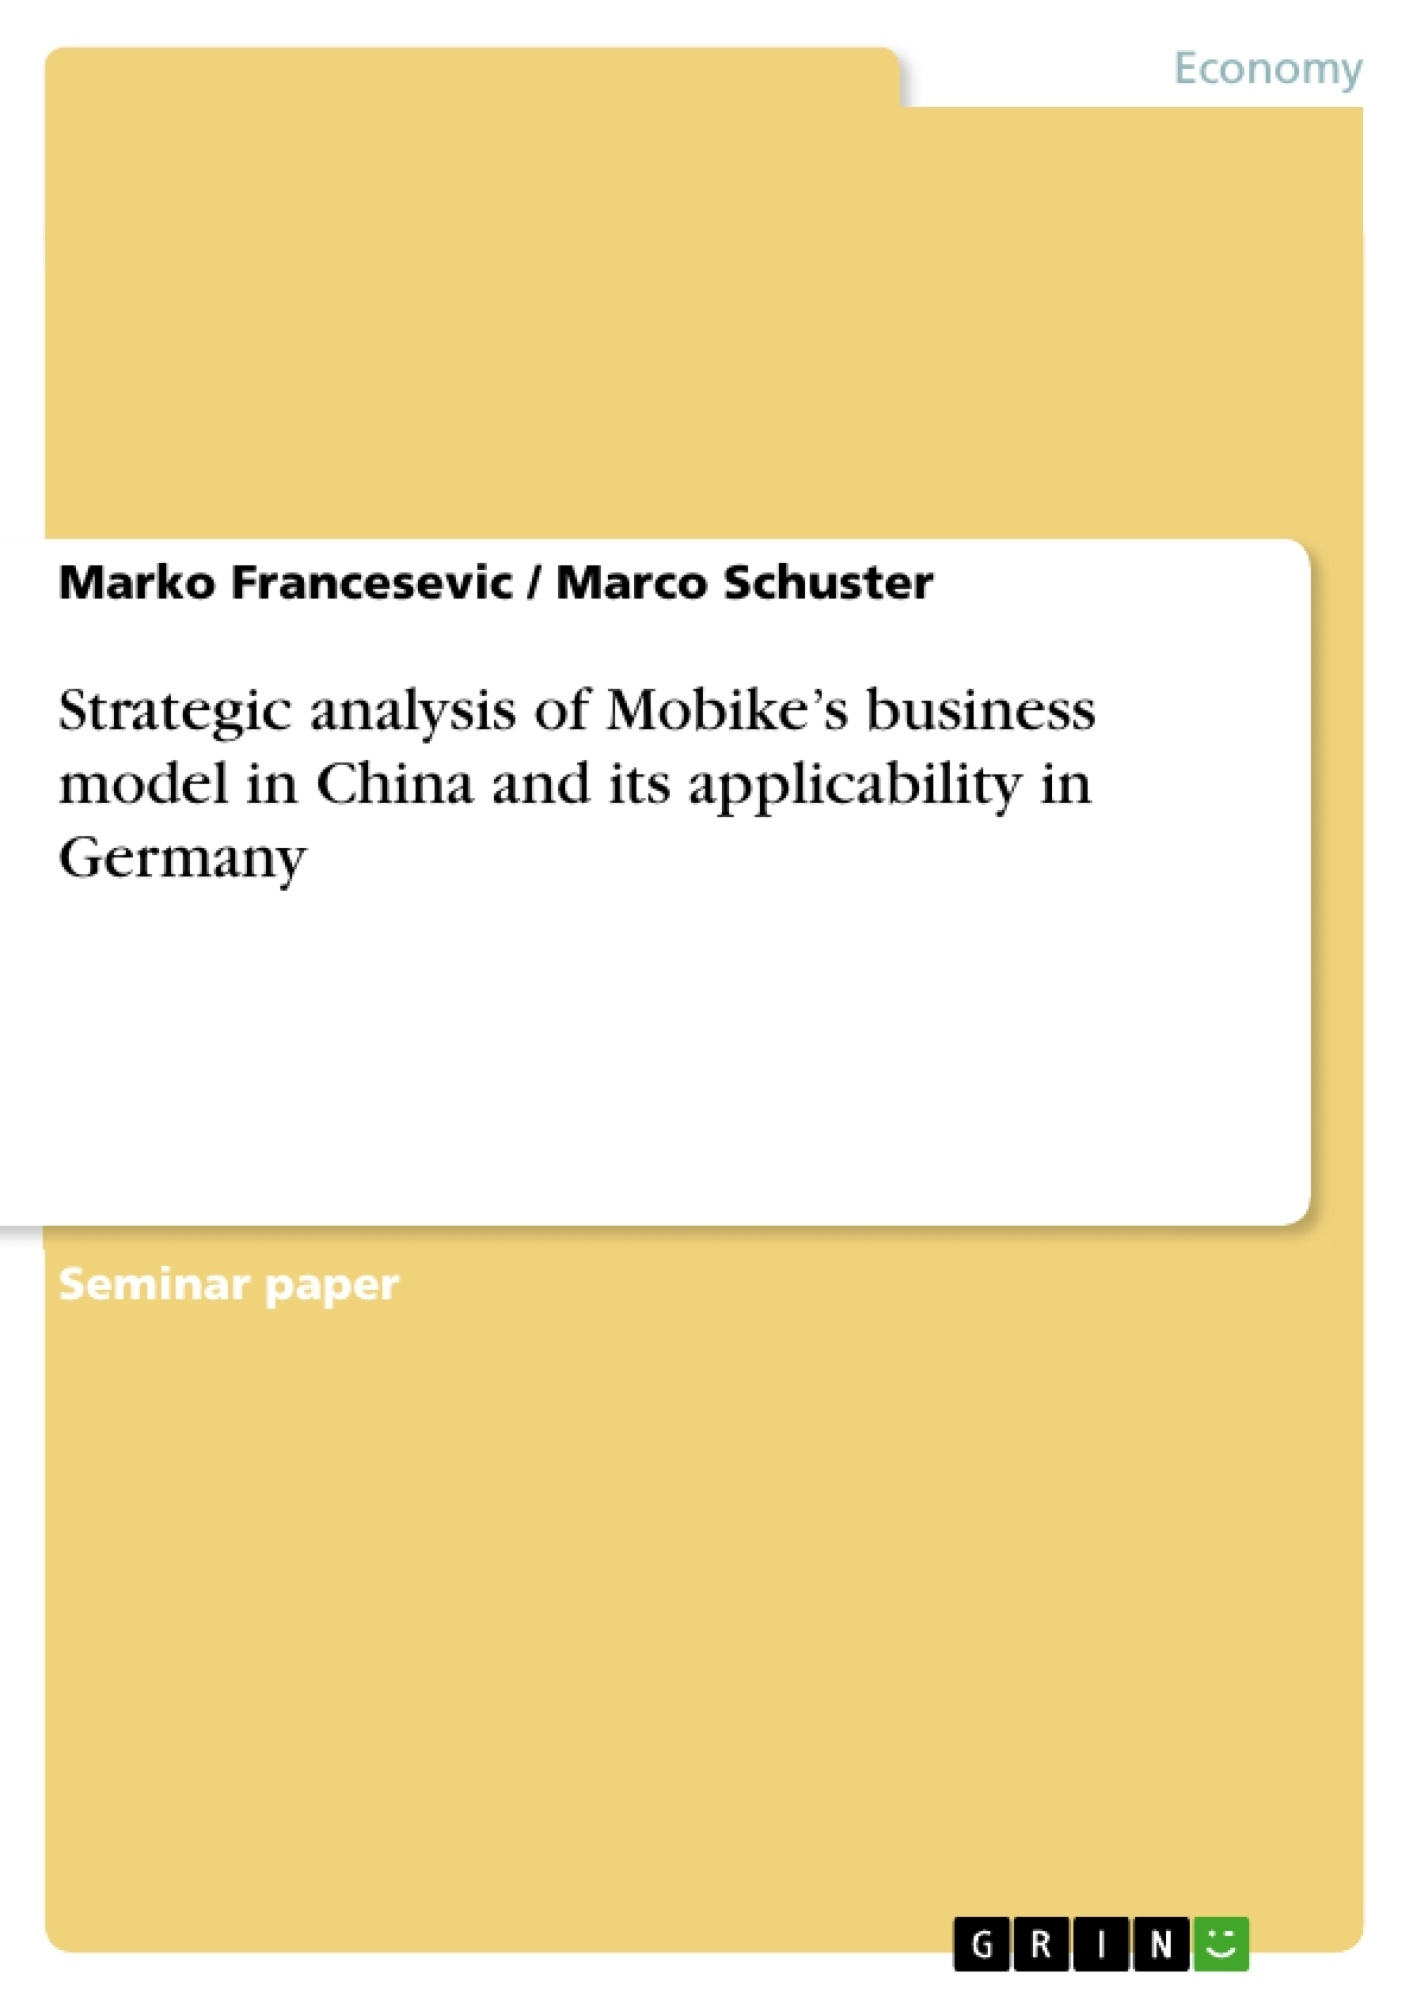 Title: Strategic analysis of Mobike's business model in China and its applicability in Germany